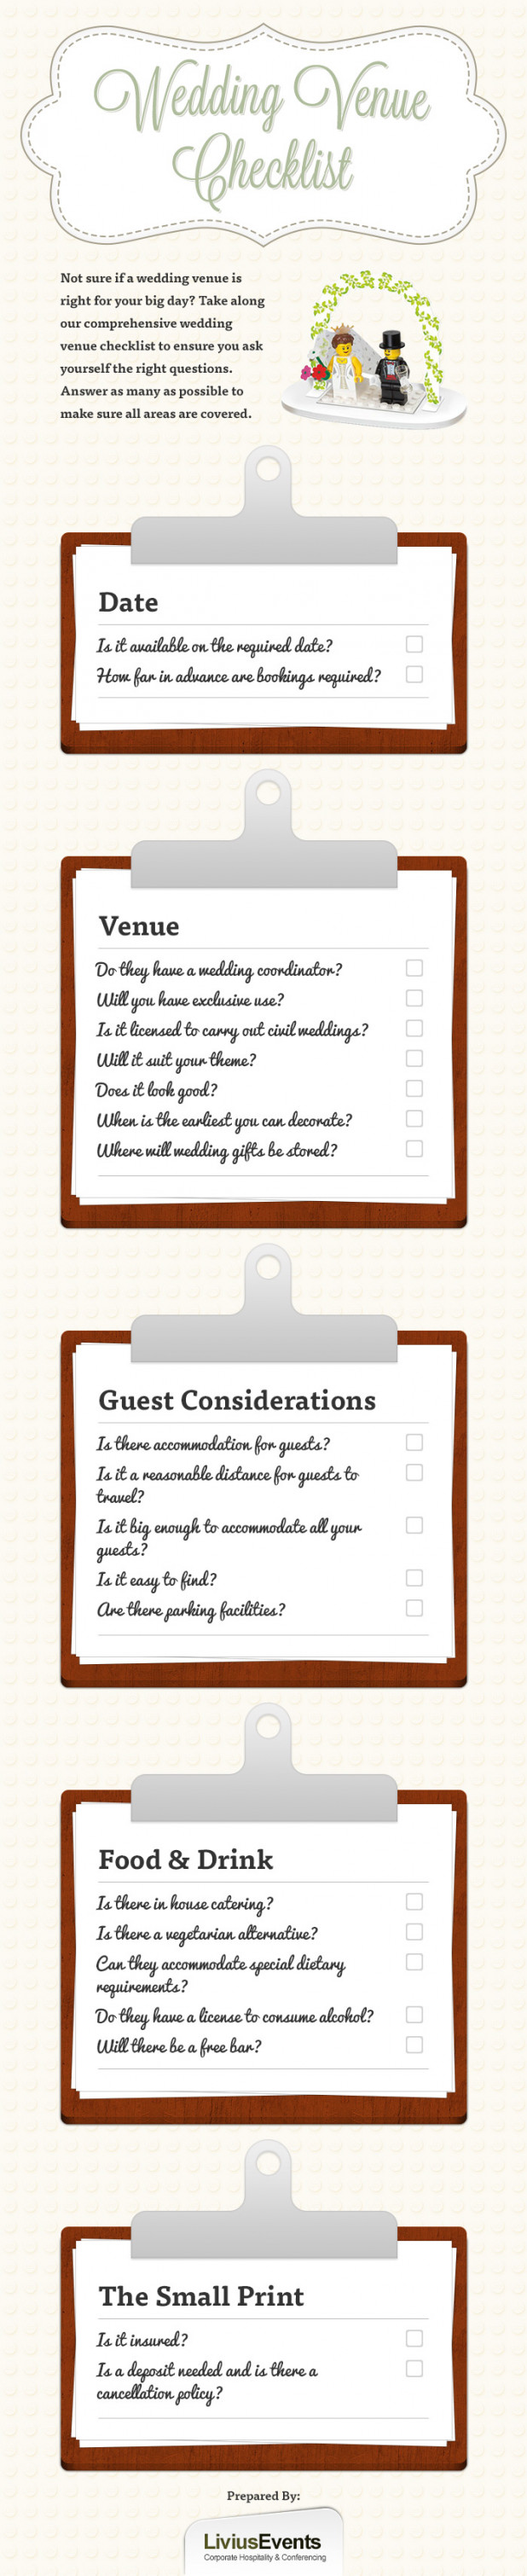 This is a picture of Gorgeous Wedding Venue Checklist Printable